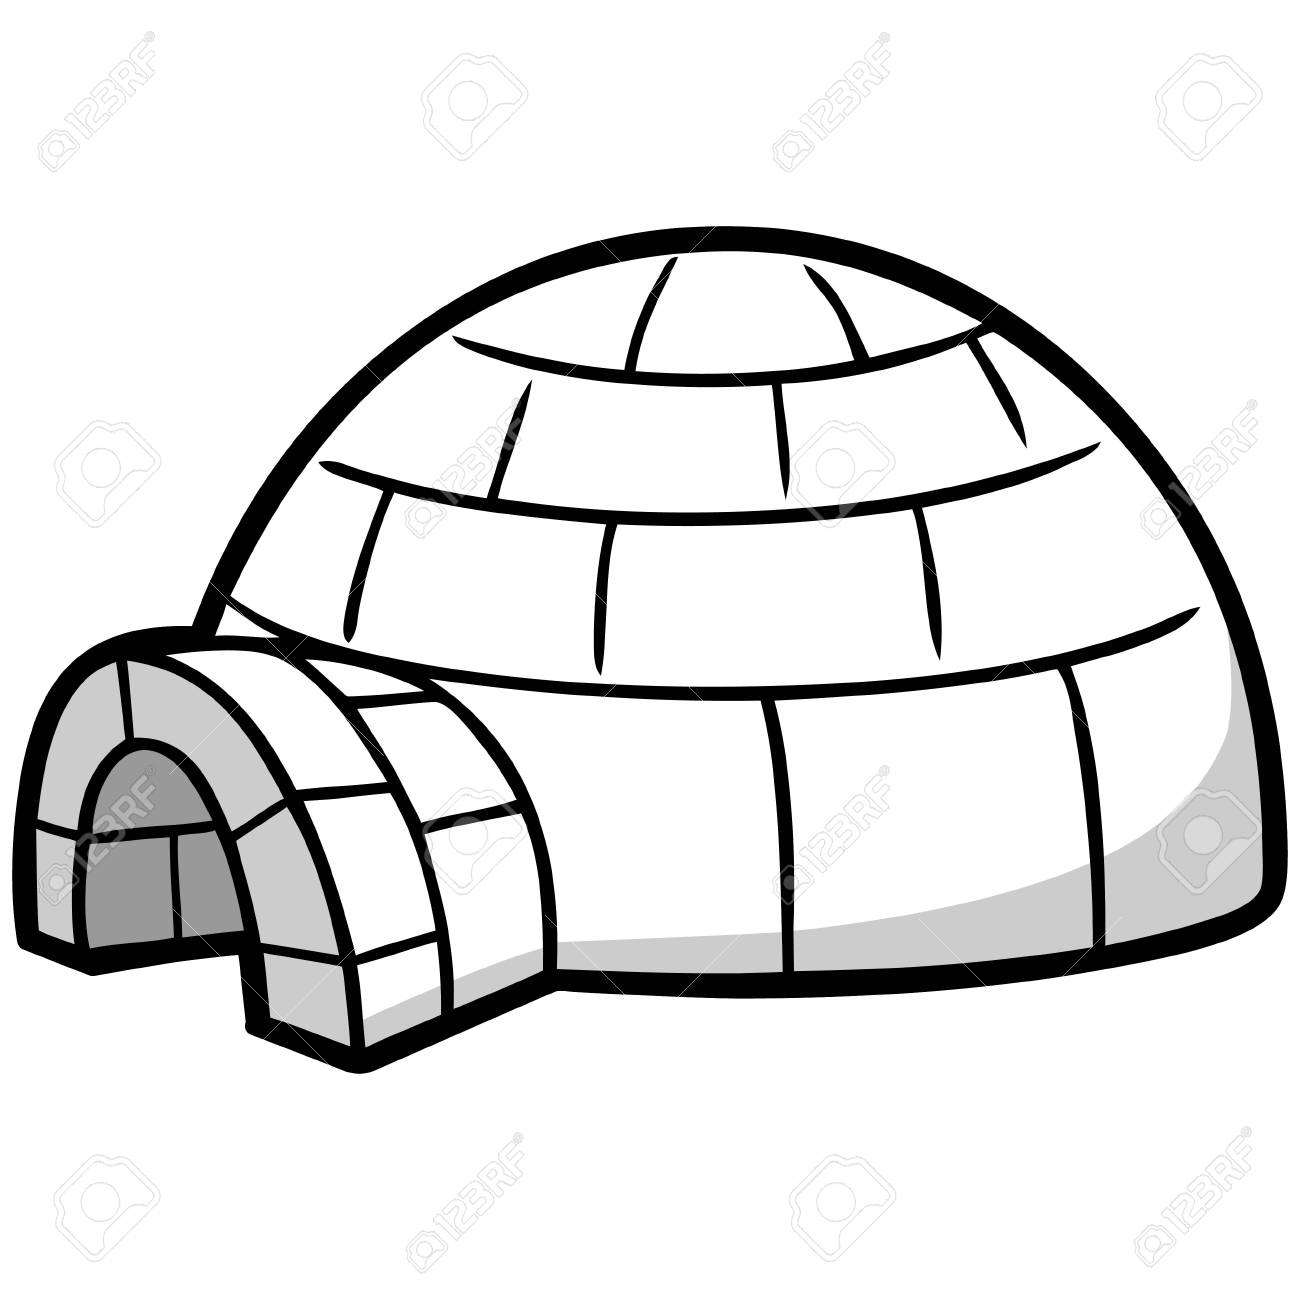 Igloo clipart Awesome Igloo Illustration Royalty Free Cliparts.